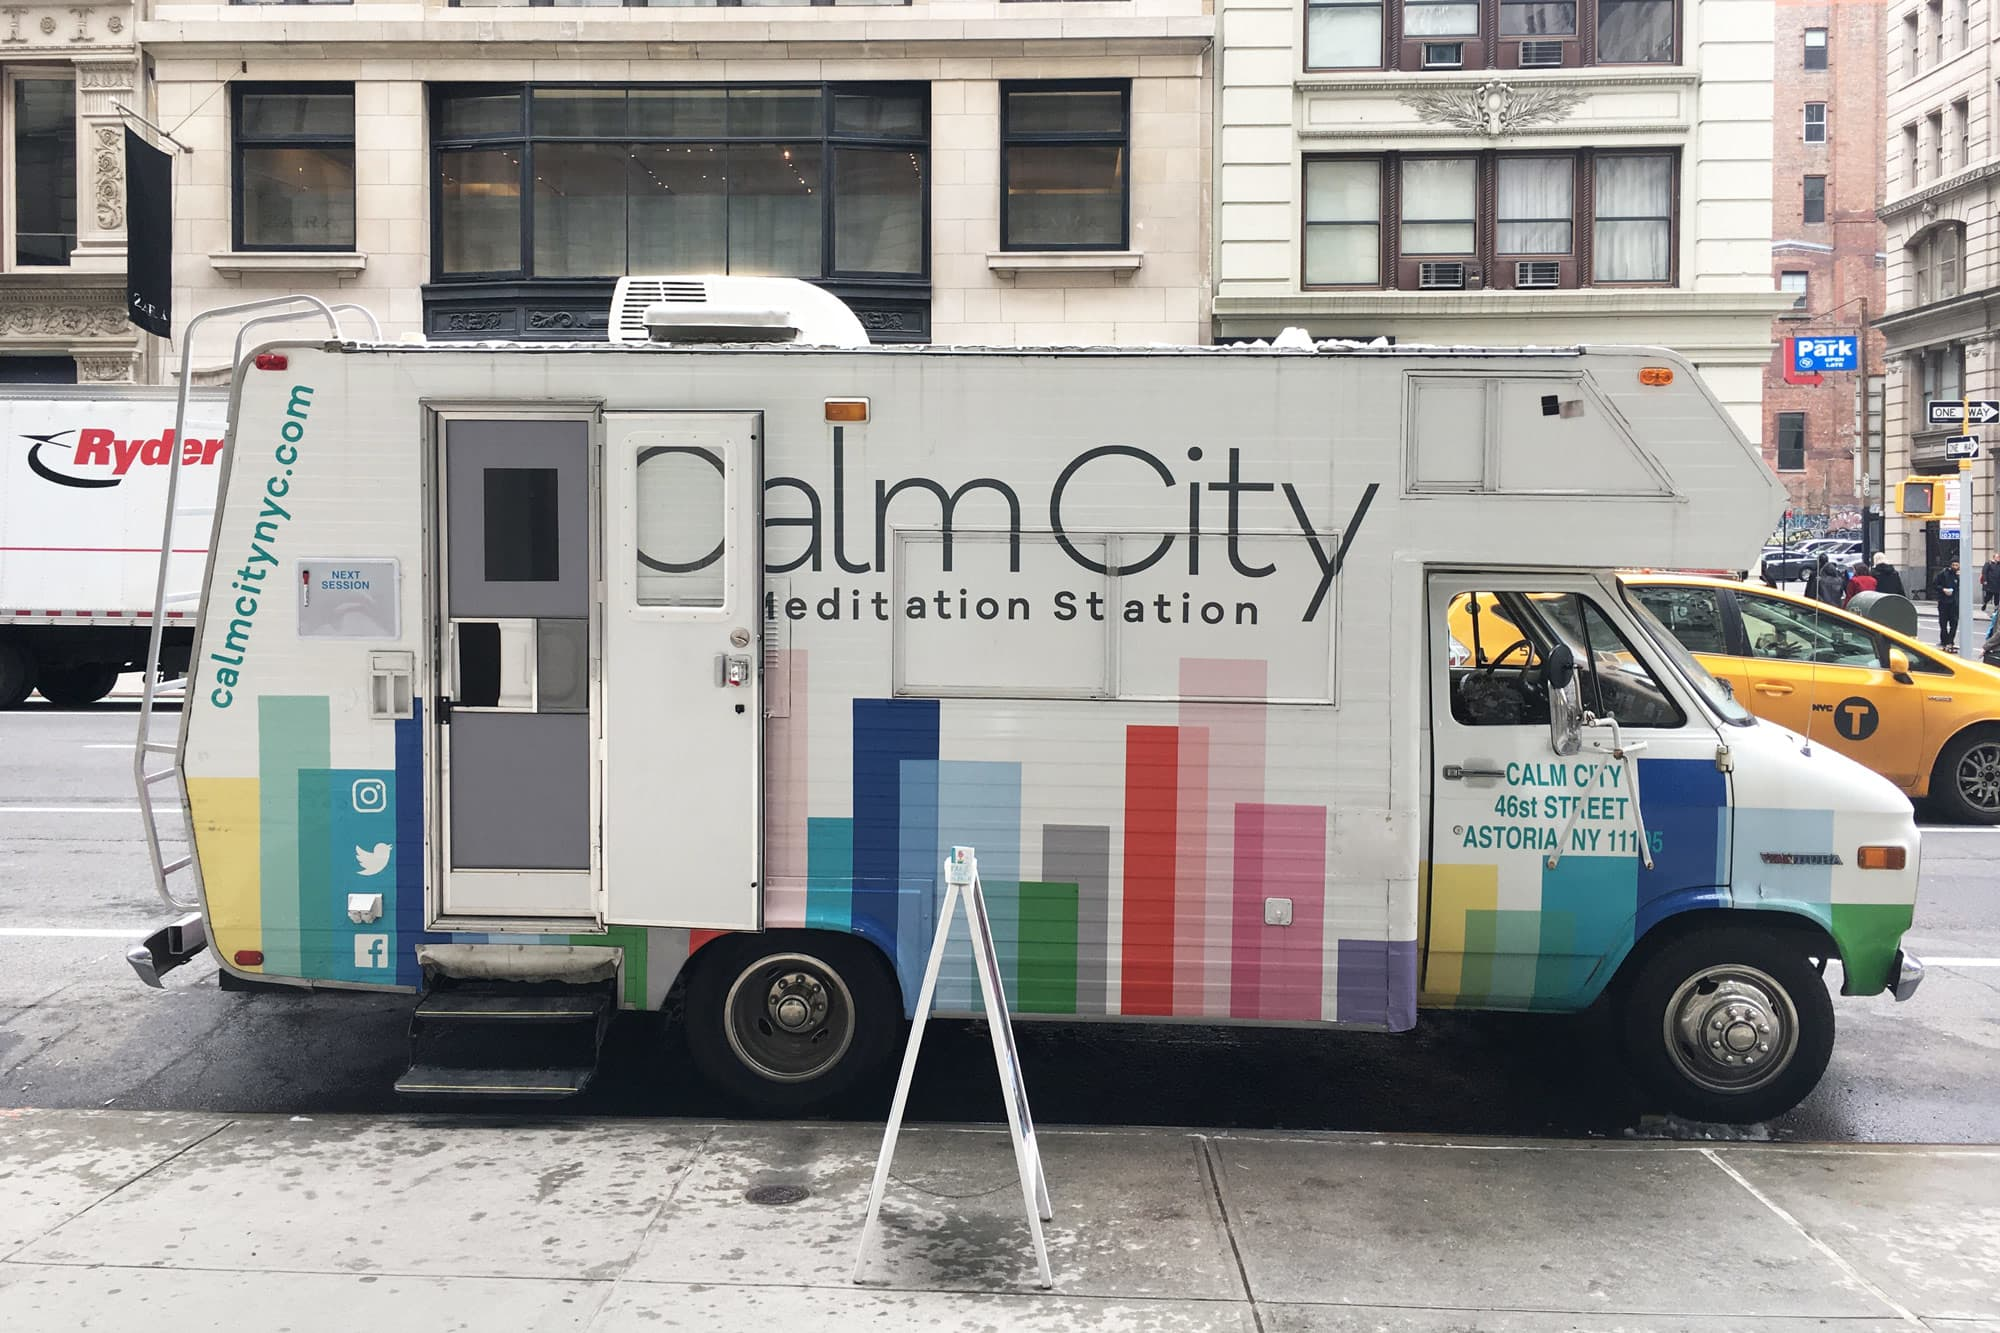 Mobile meditation studios on the rise offering a chance to de stress